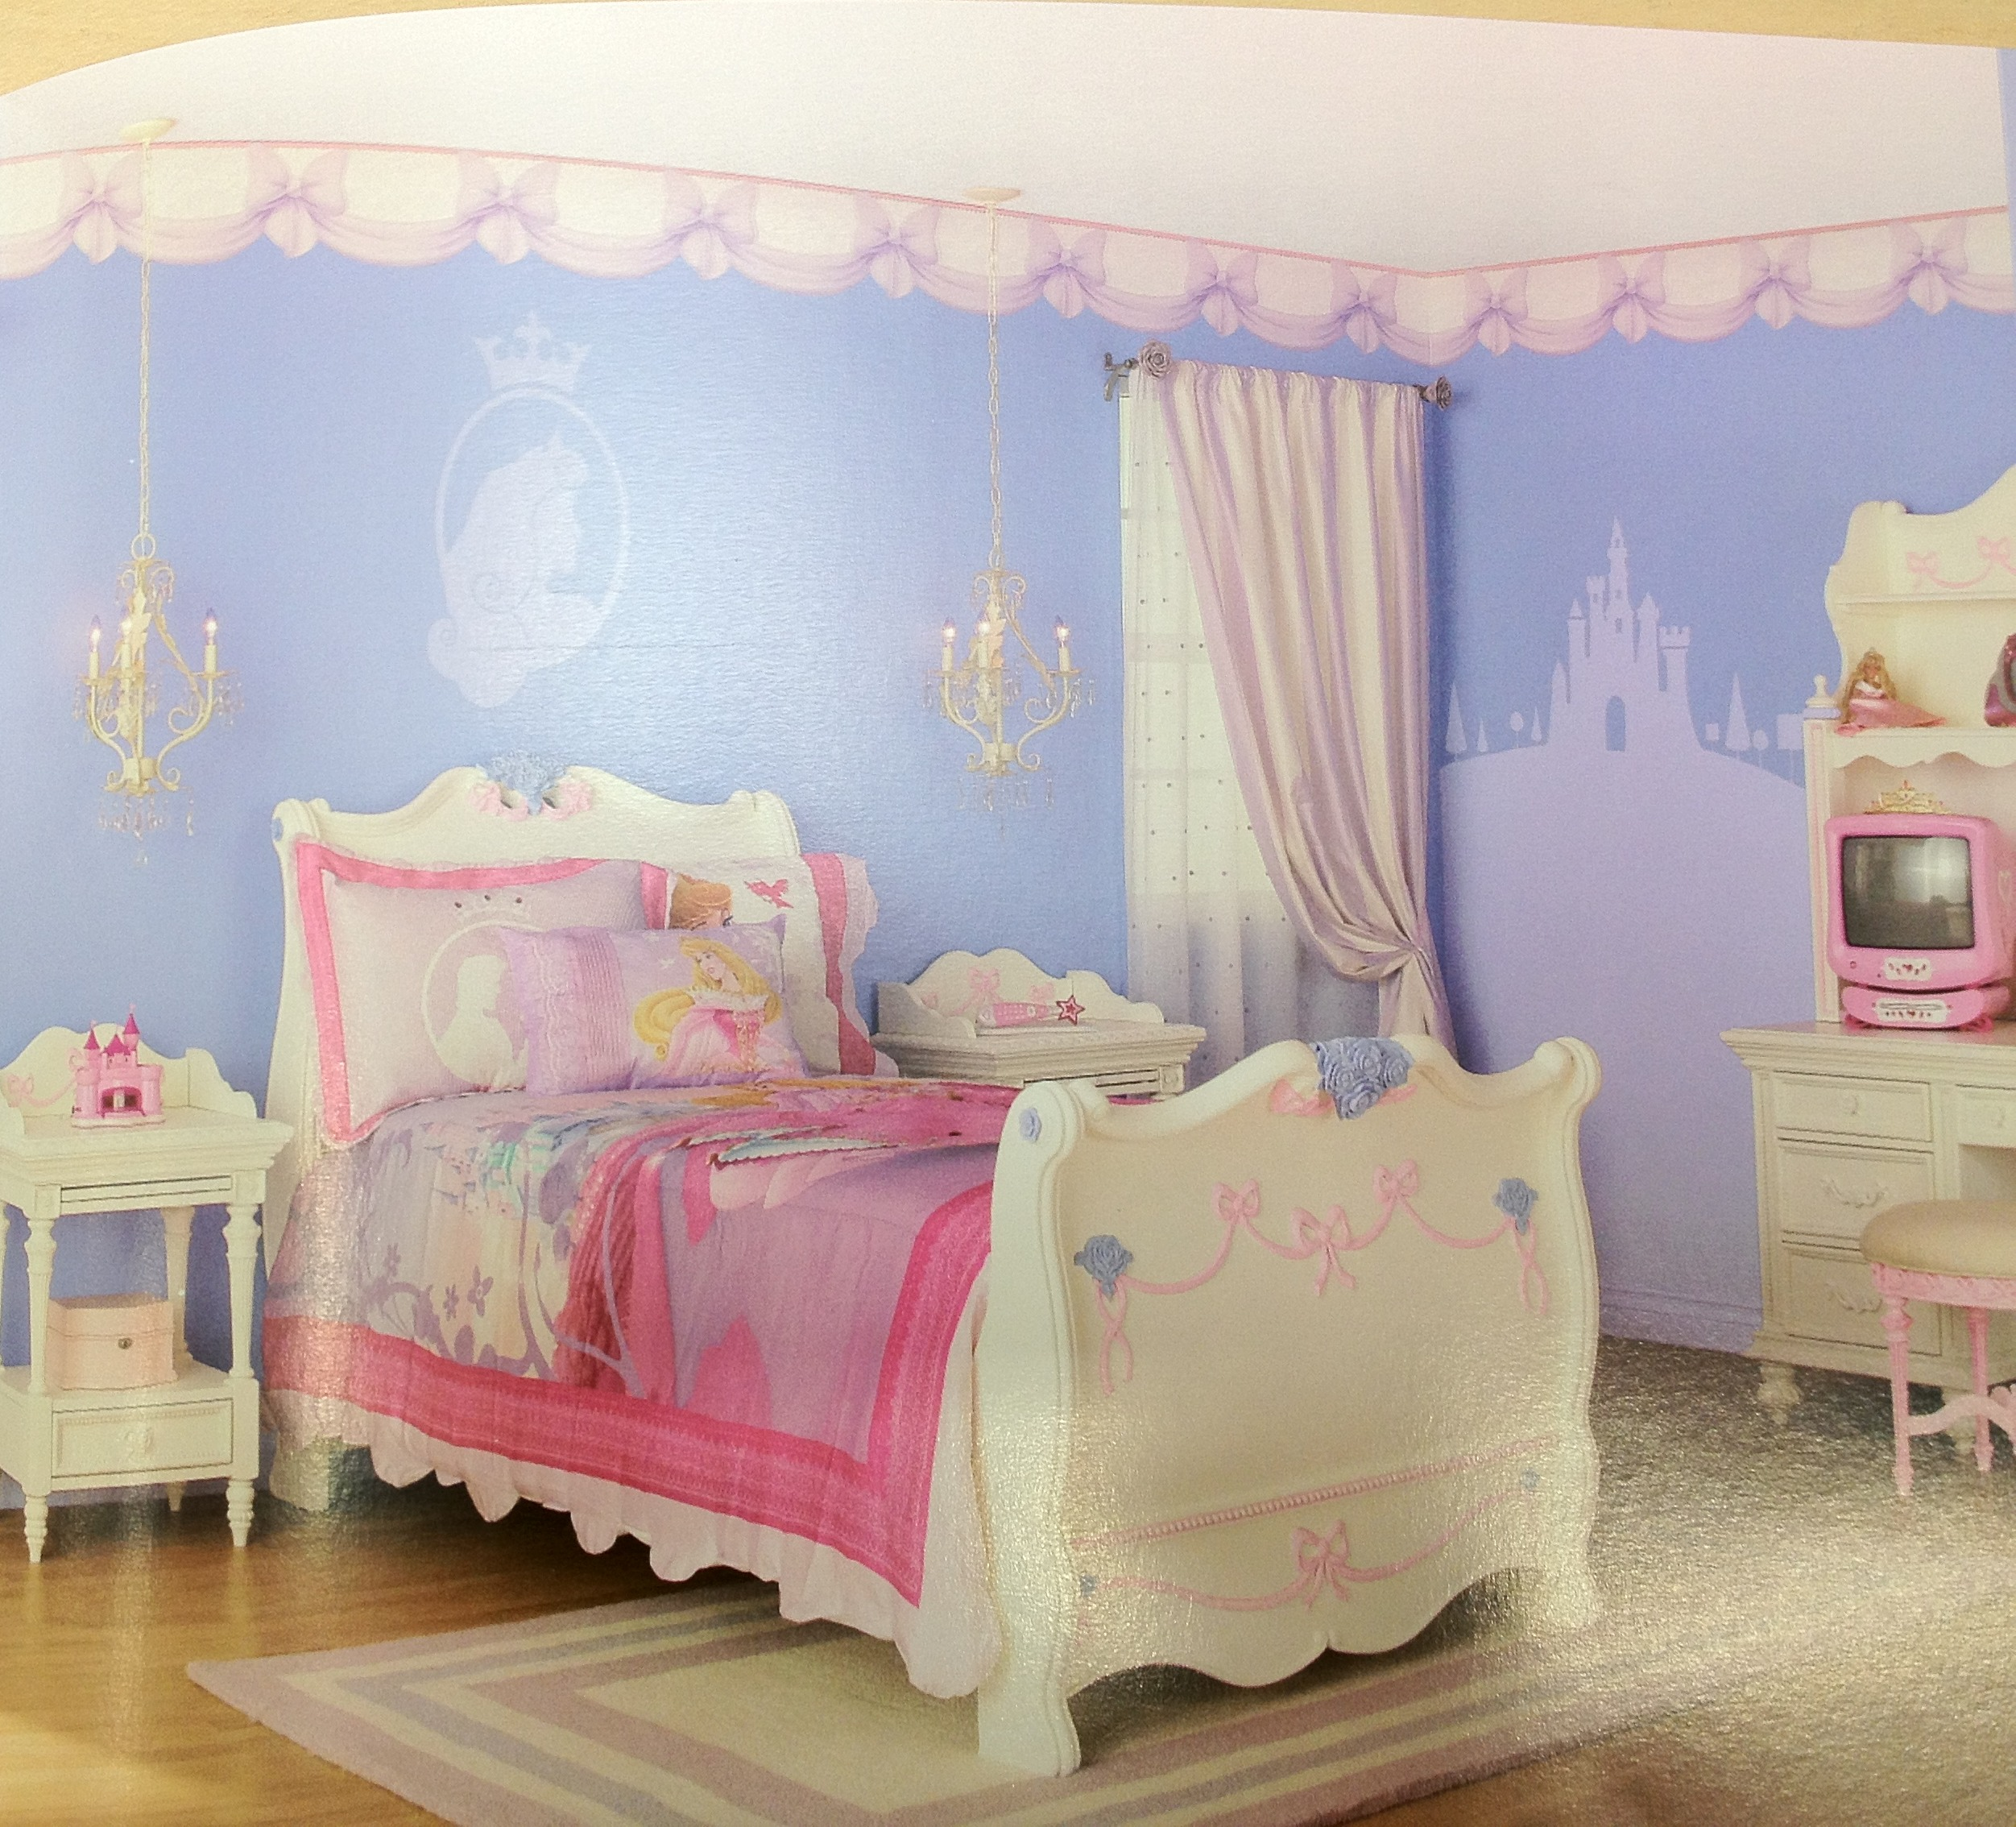 Disney Princess Bedroom Furniture - Home Interior Design 2016